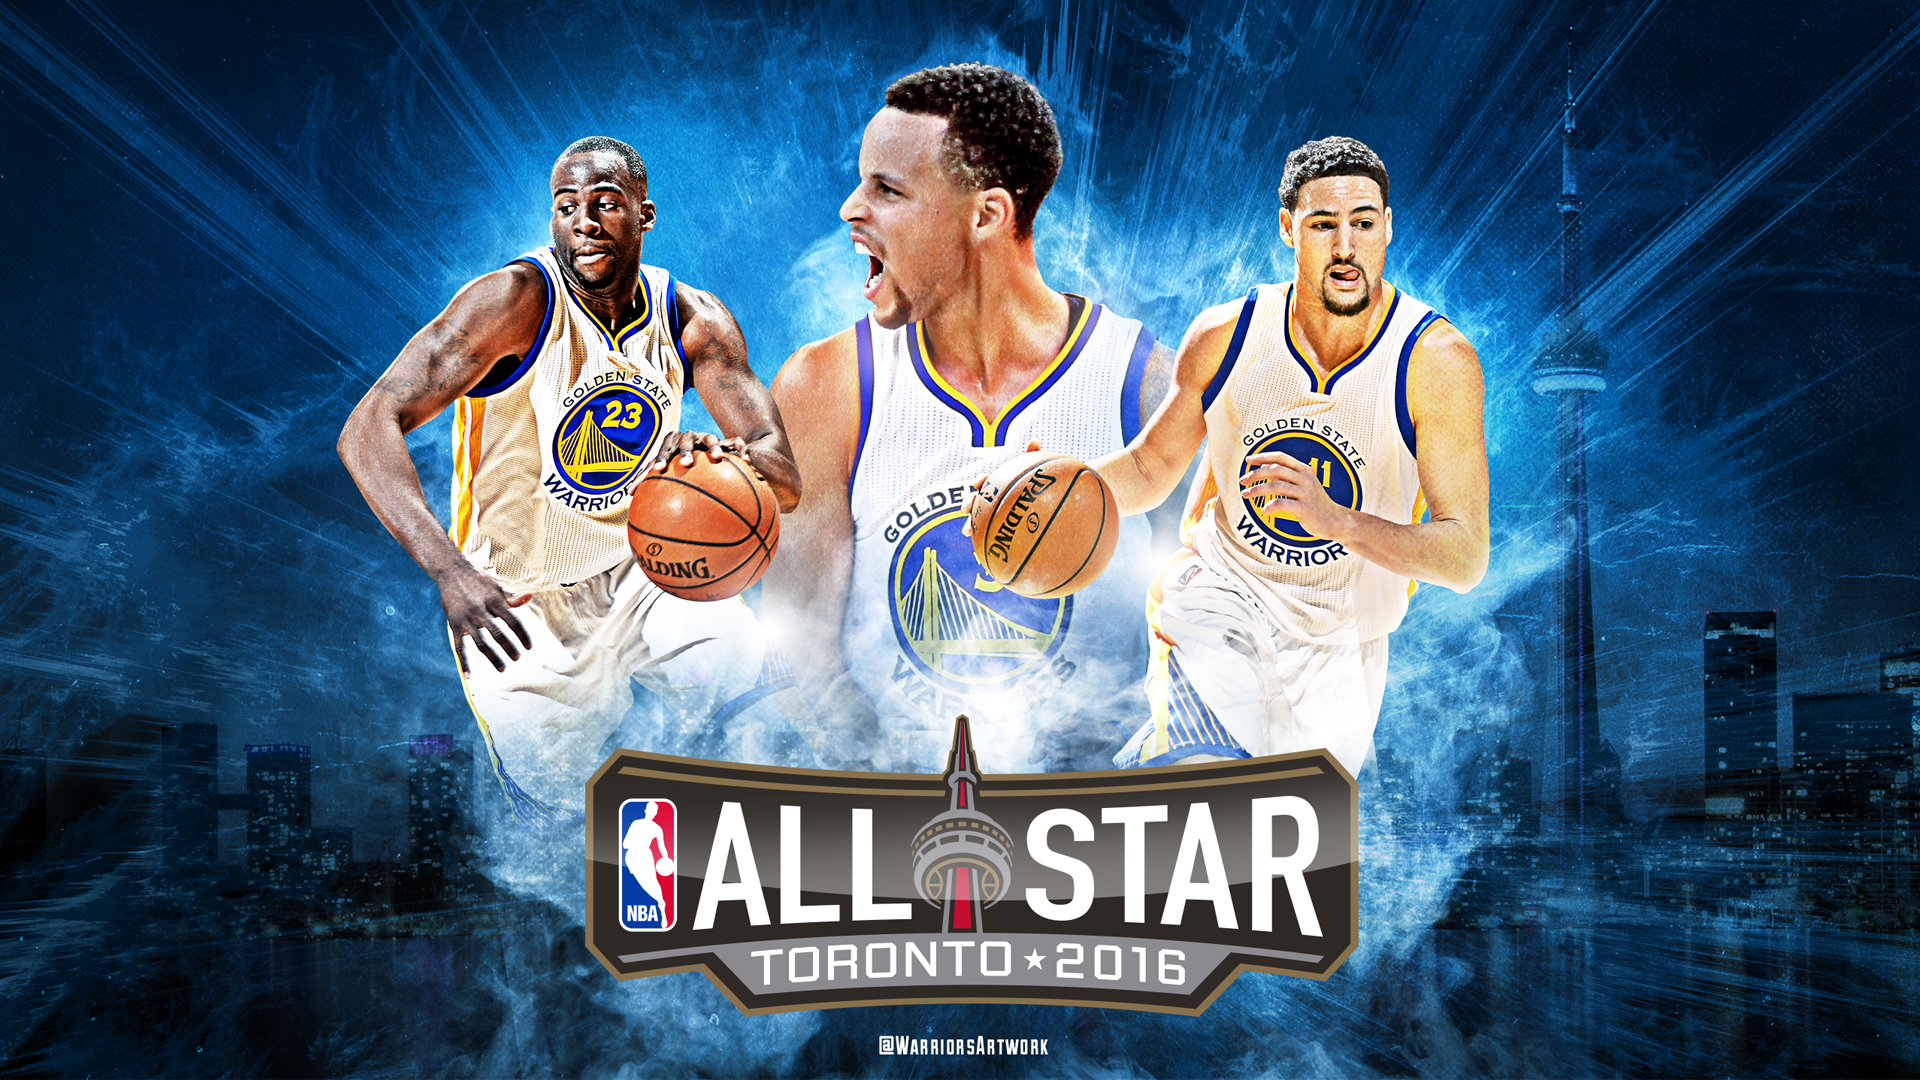 Best 3d Live Wallpaper Android 2015 Wallpapers Golden State Warriors